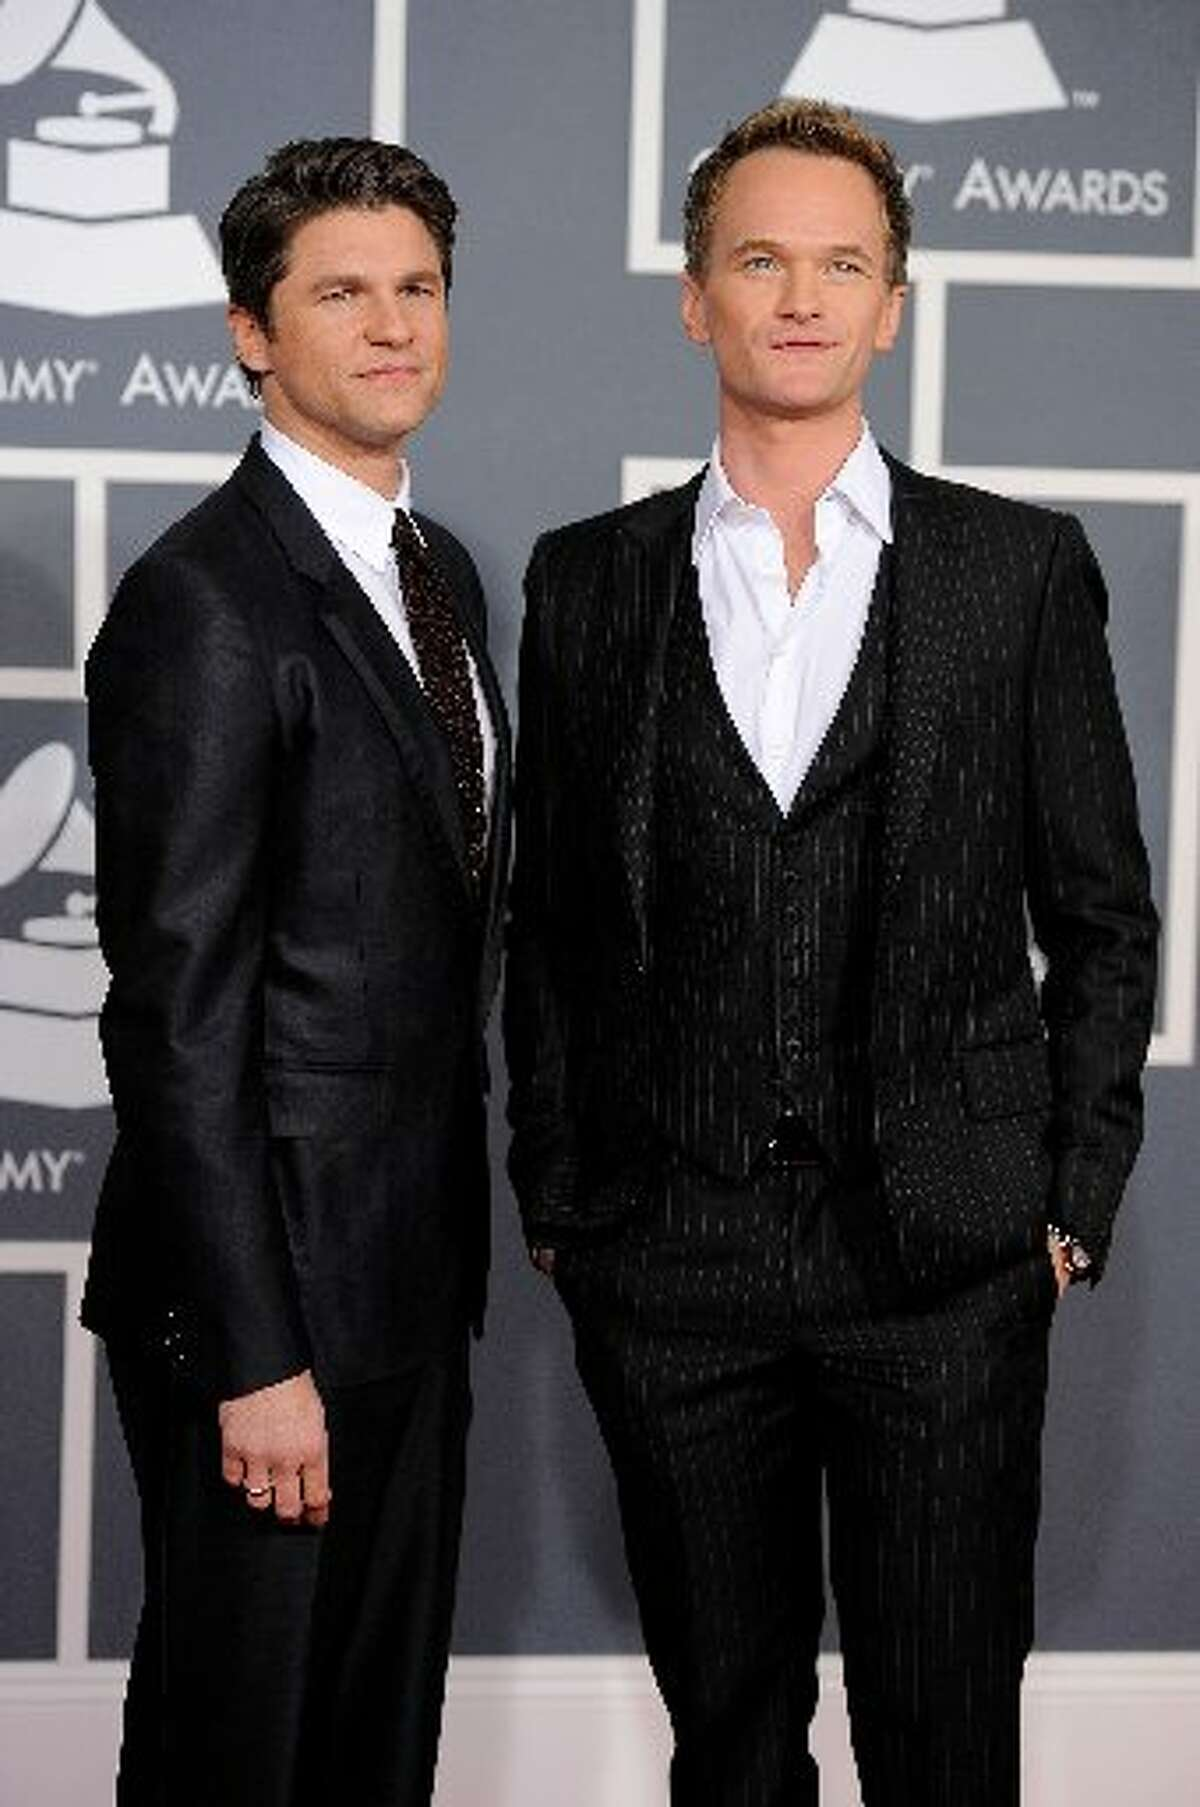 Neil Patrick Harris Harris and his partner David Burtka became fathers to twins.